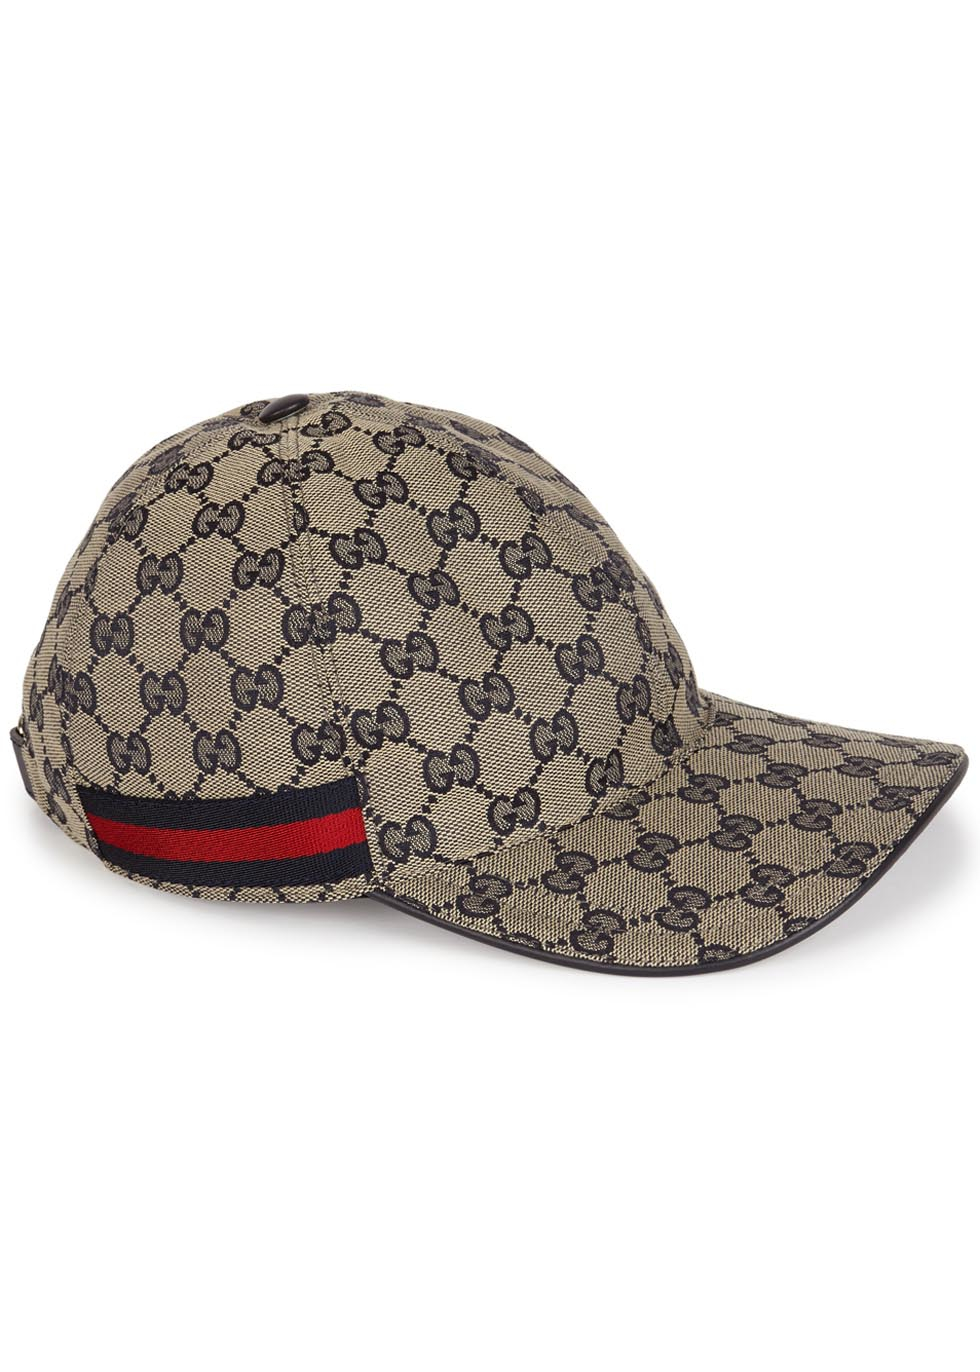 1887a36a1f0 Gucci Gg Sand Monogrammed Canvas Cap in Blue - Lyst